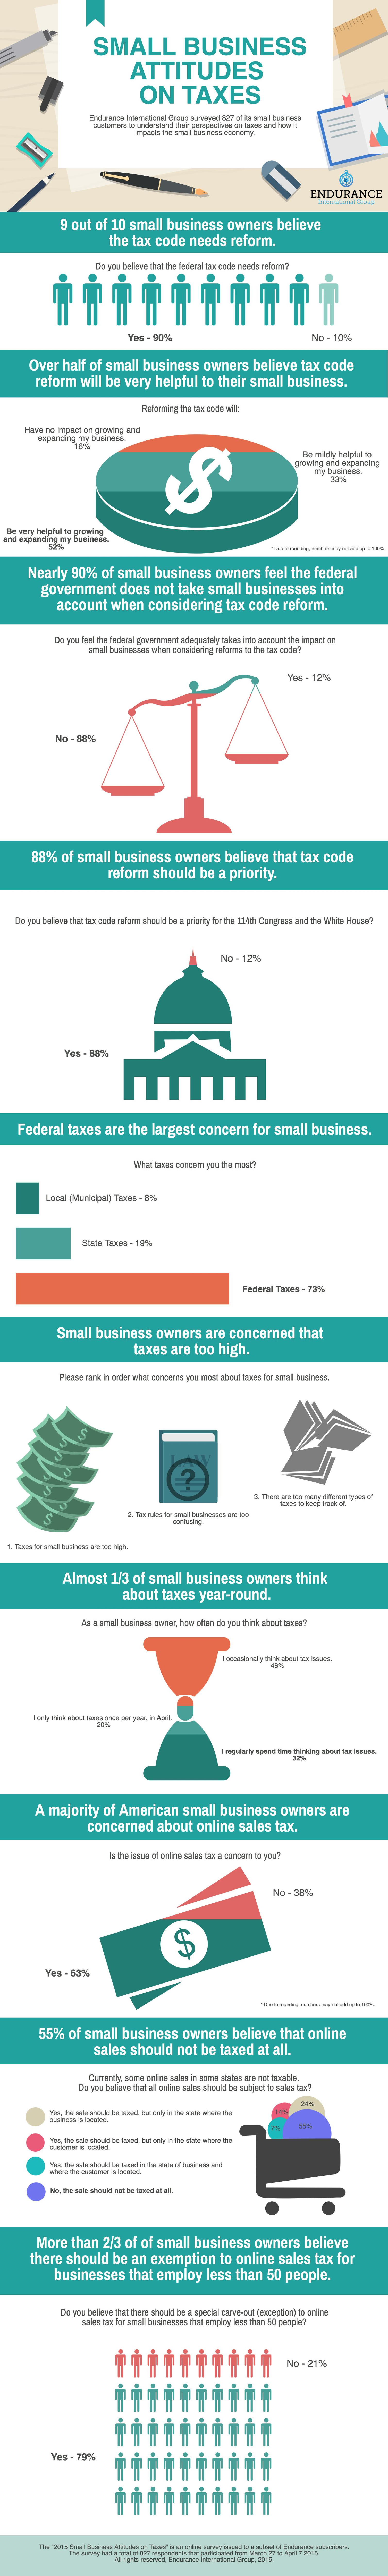 2015 Small Business and Taxes